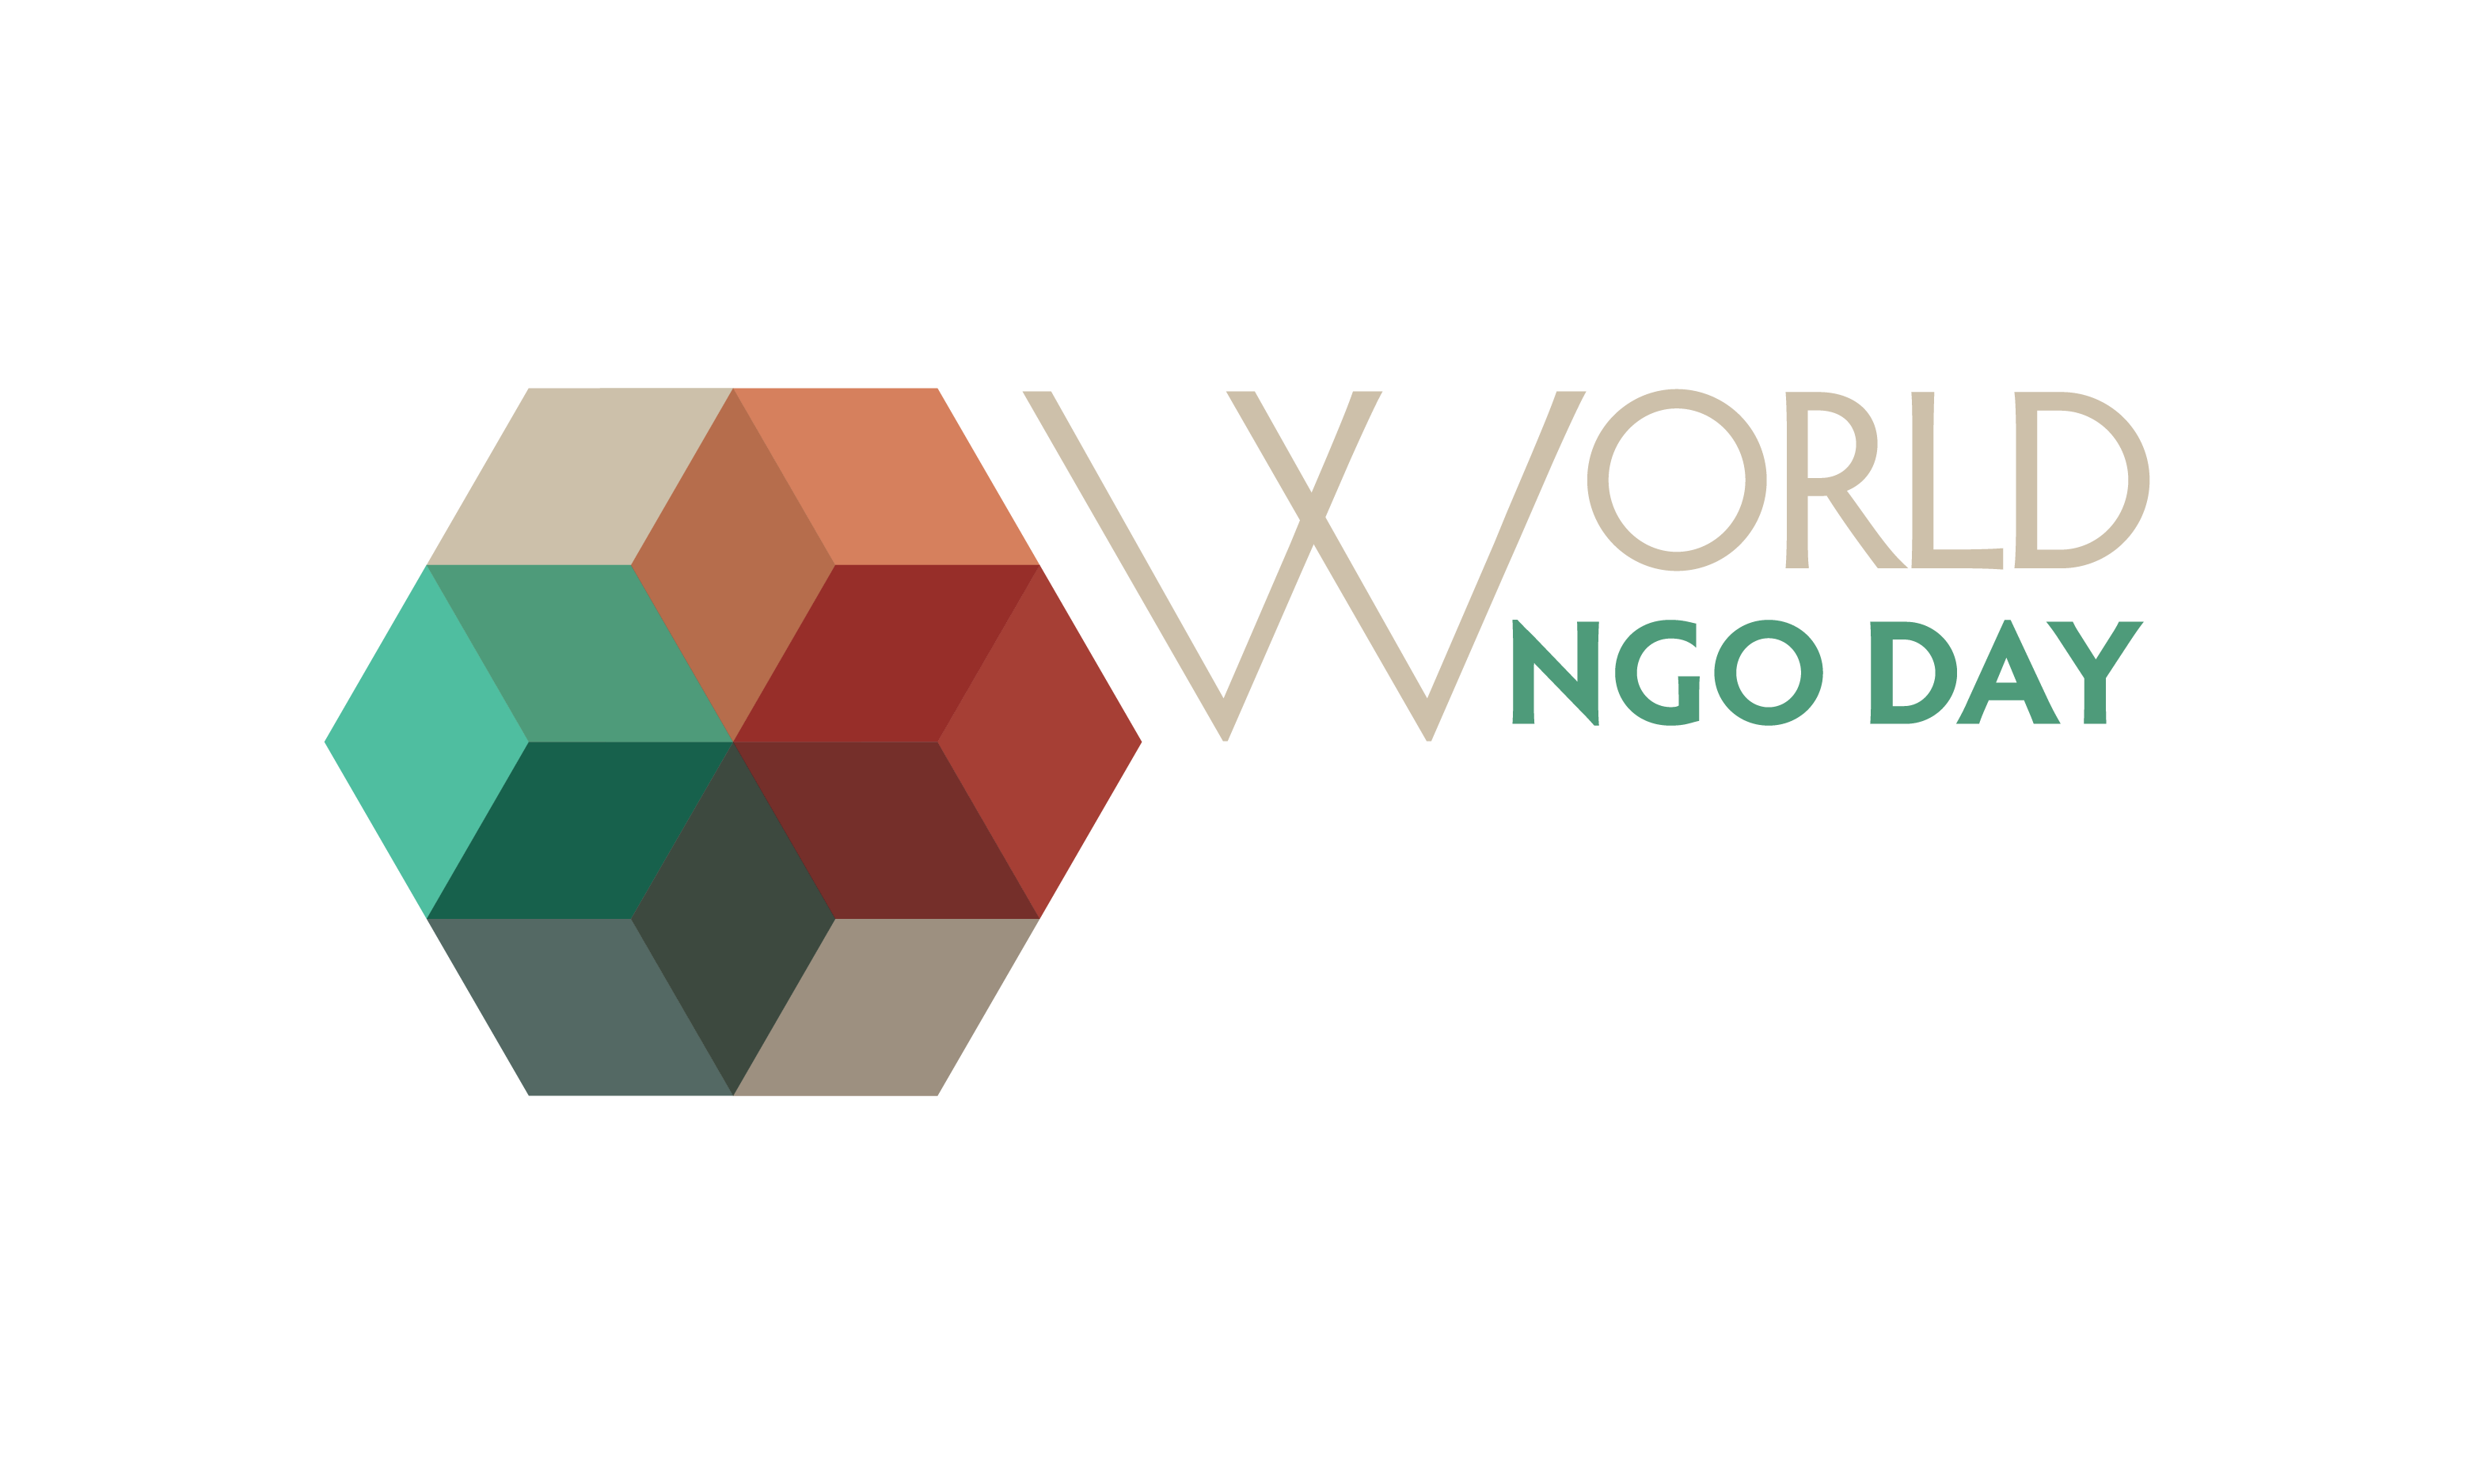 World NGO Day, 27 February 2019